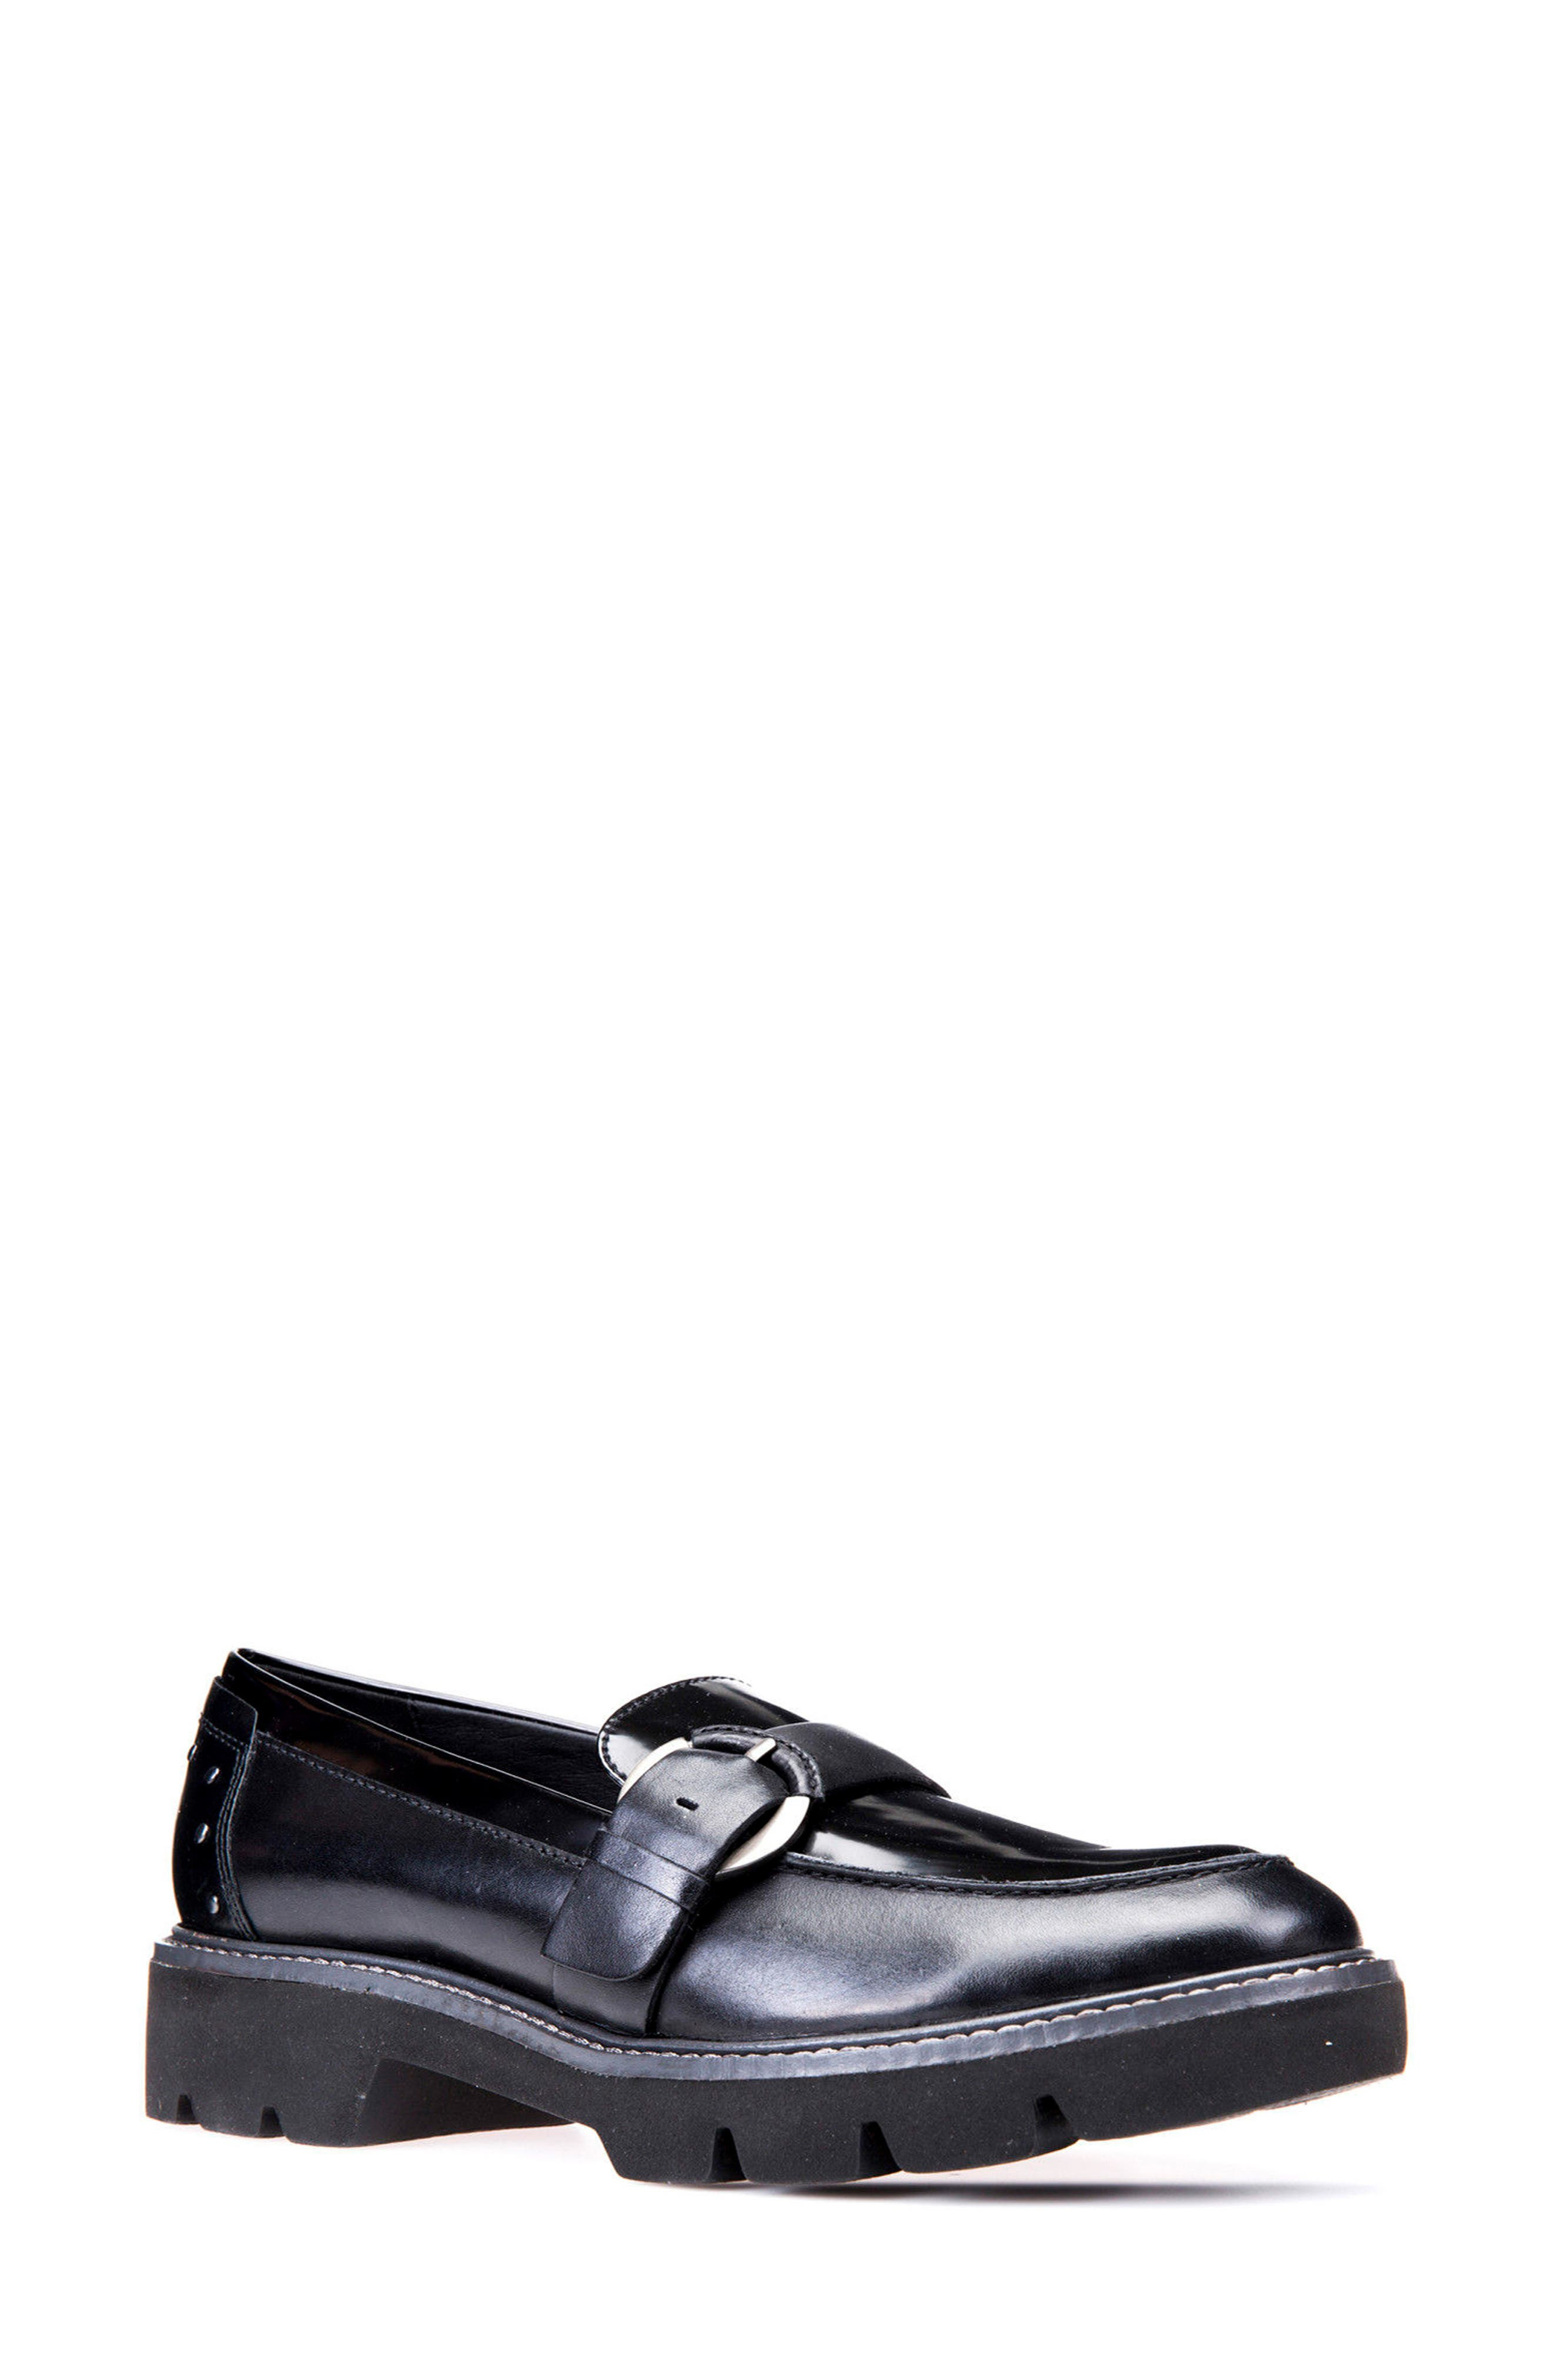 Quinlynn Loafer,                         Main,                         color, 001